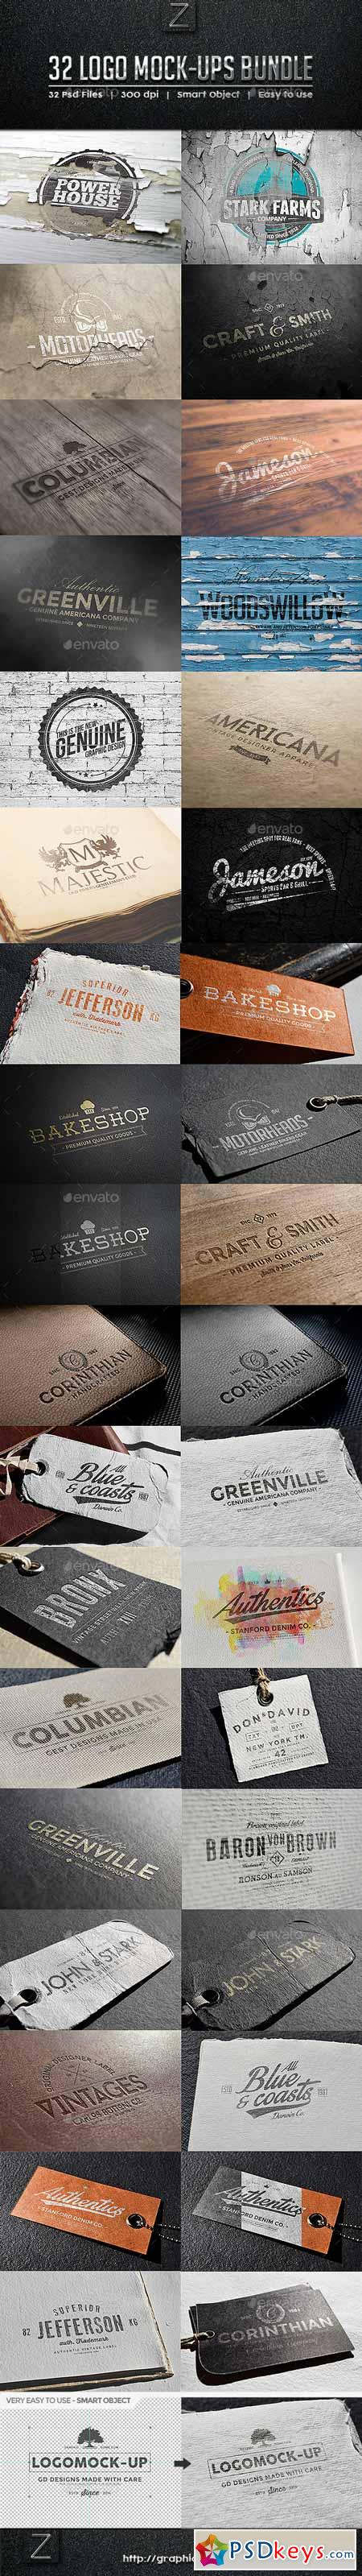 32 Logo Mock-ups Bundle 9451356